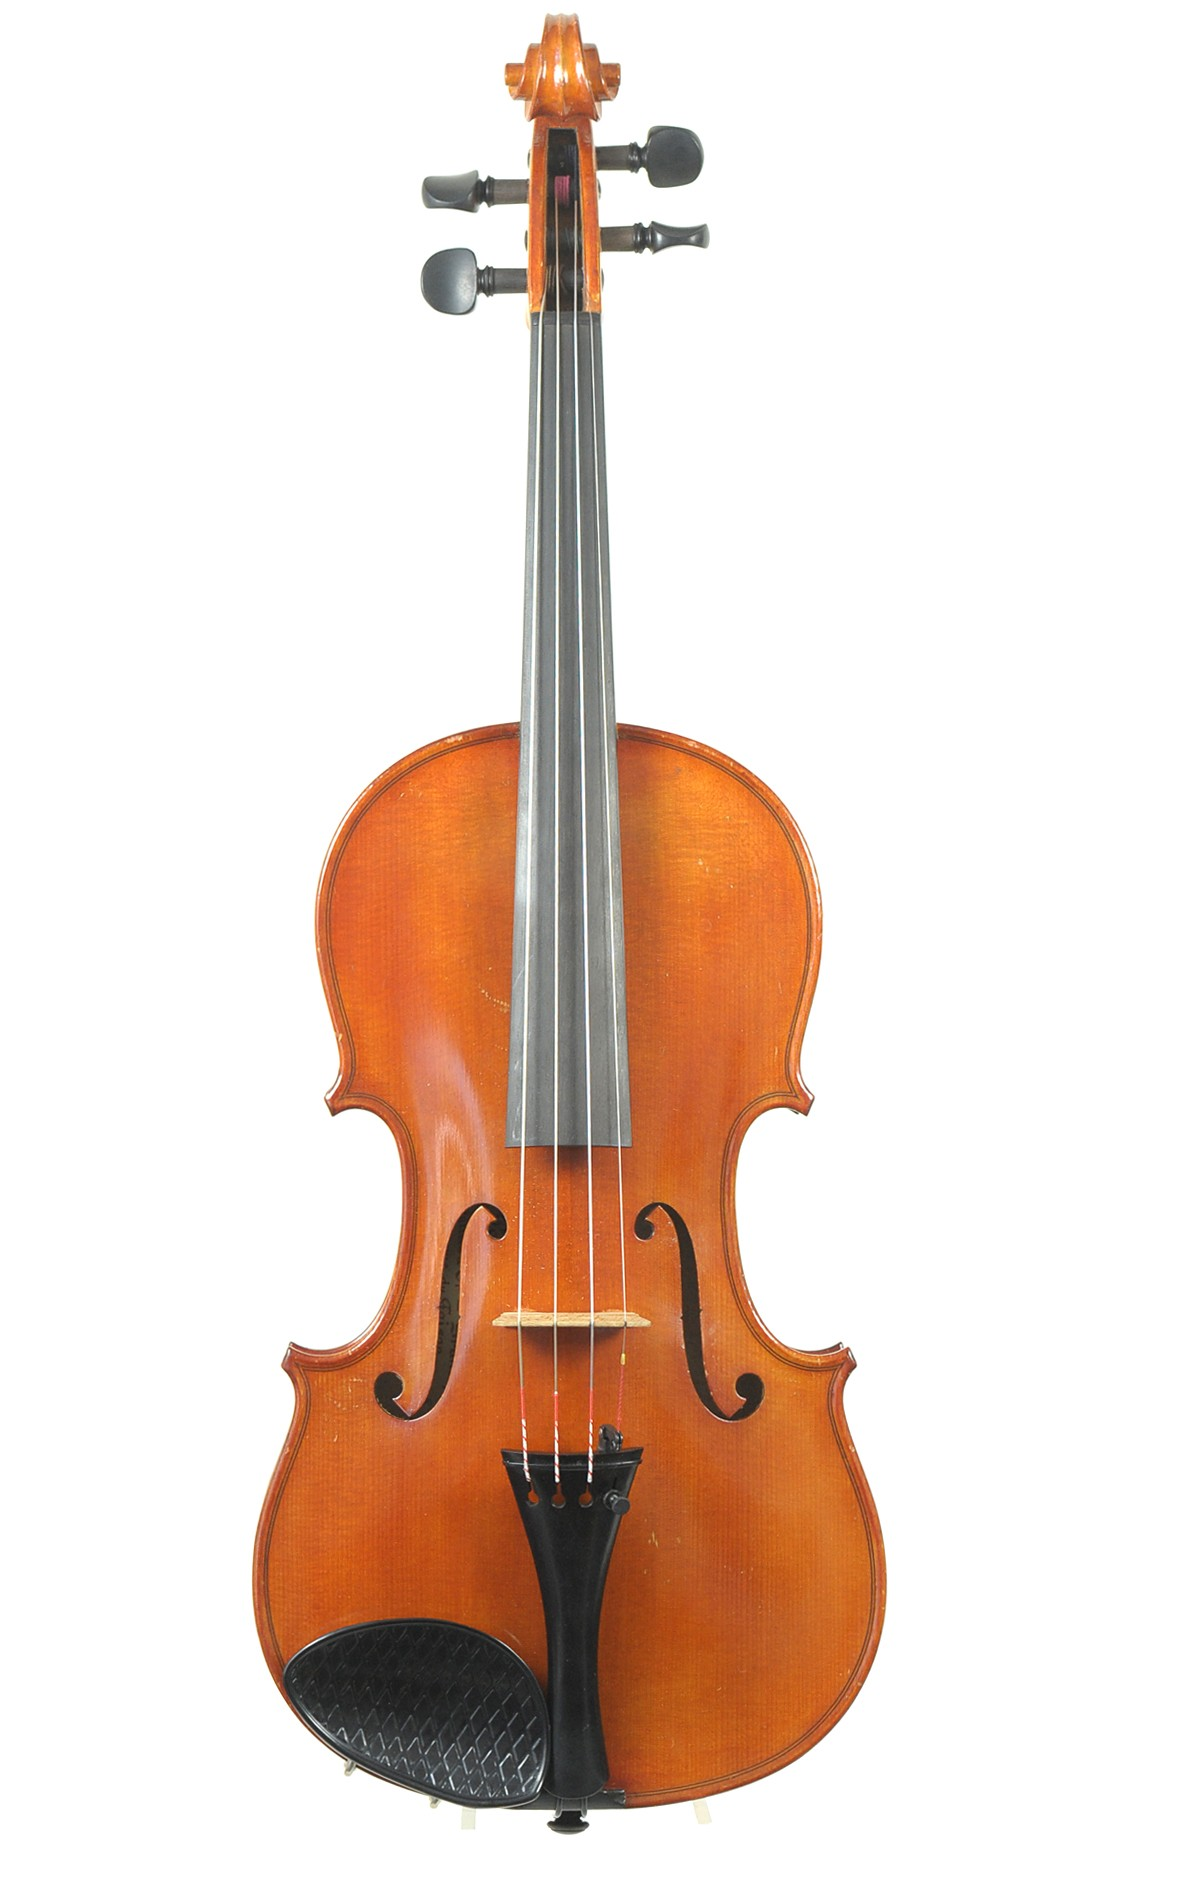 French violin from the workshop of Paul Didier in Metz, 1968: two piece table made of spruce covered with orange-brown spirit-oil varnish.